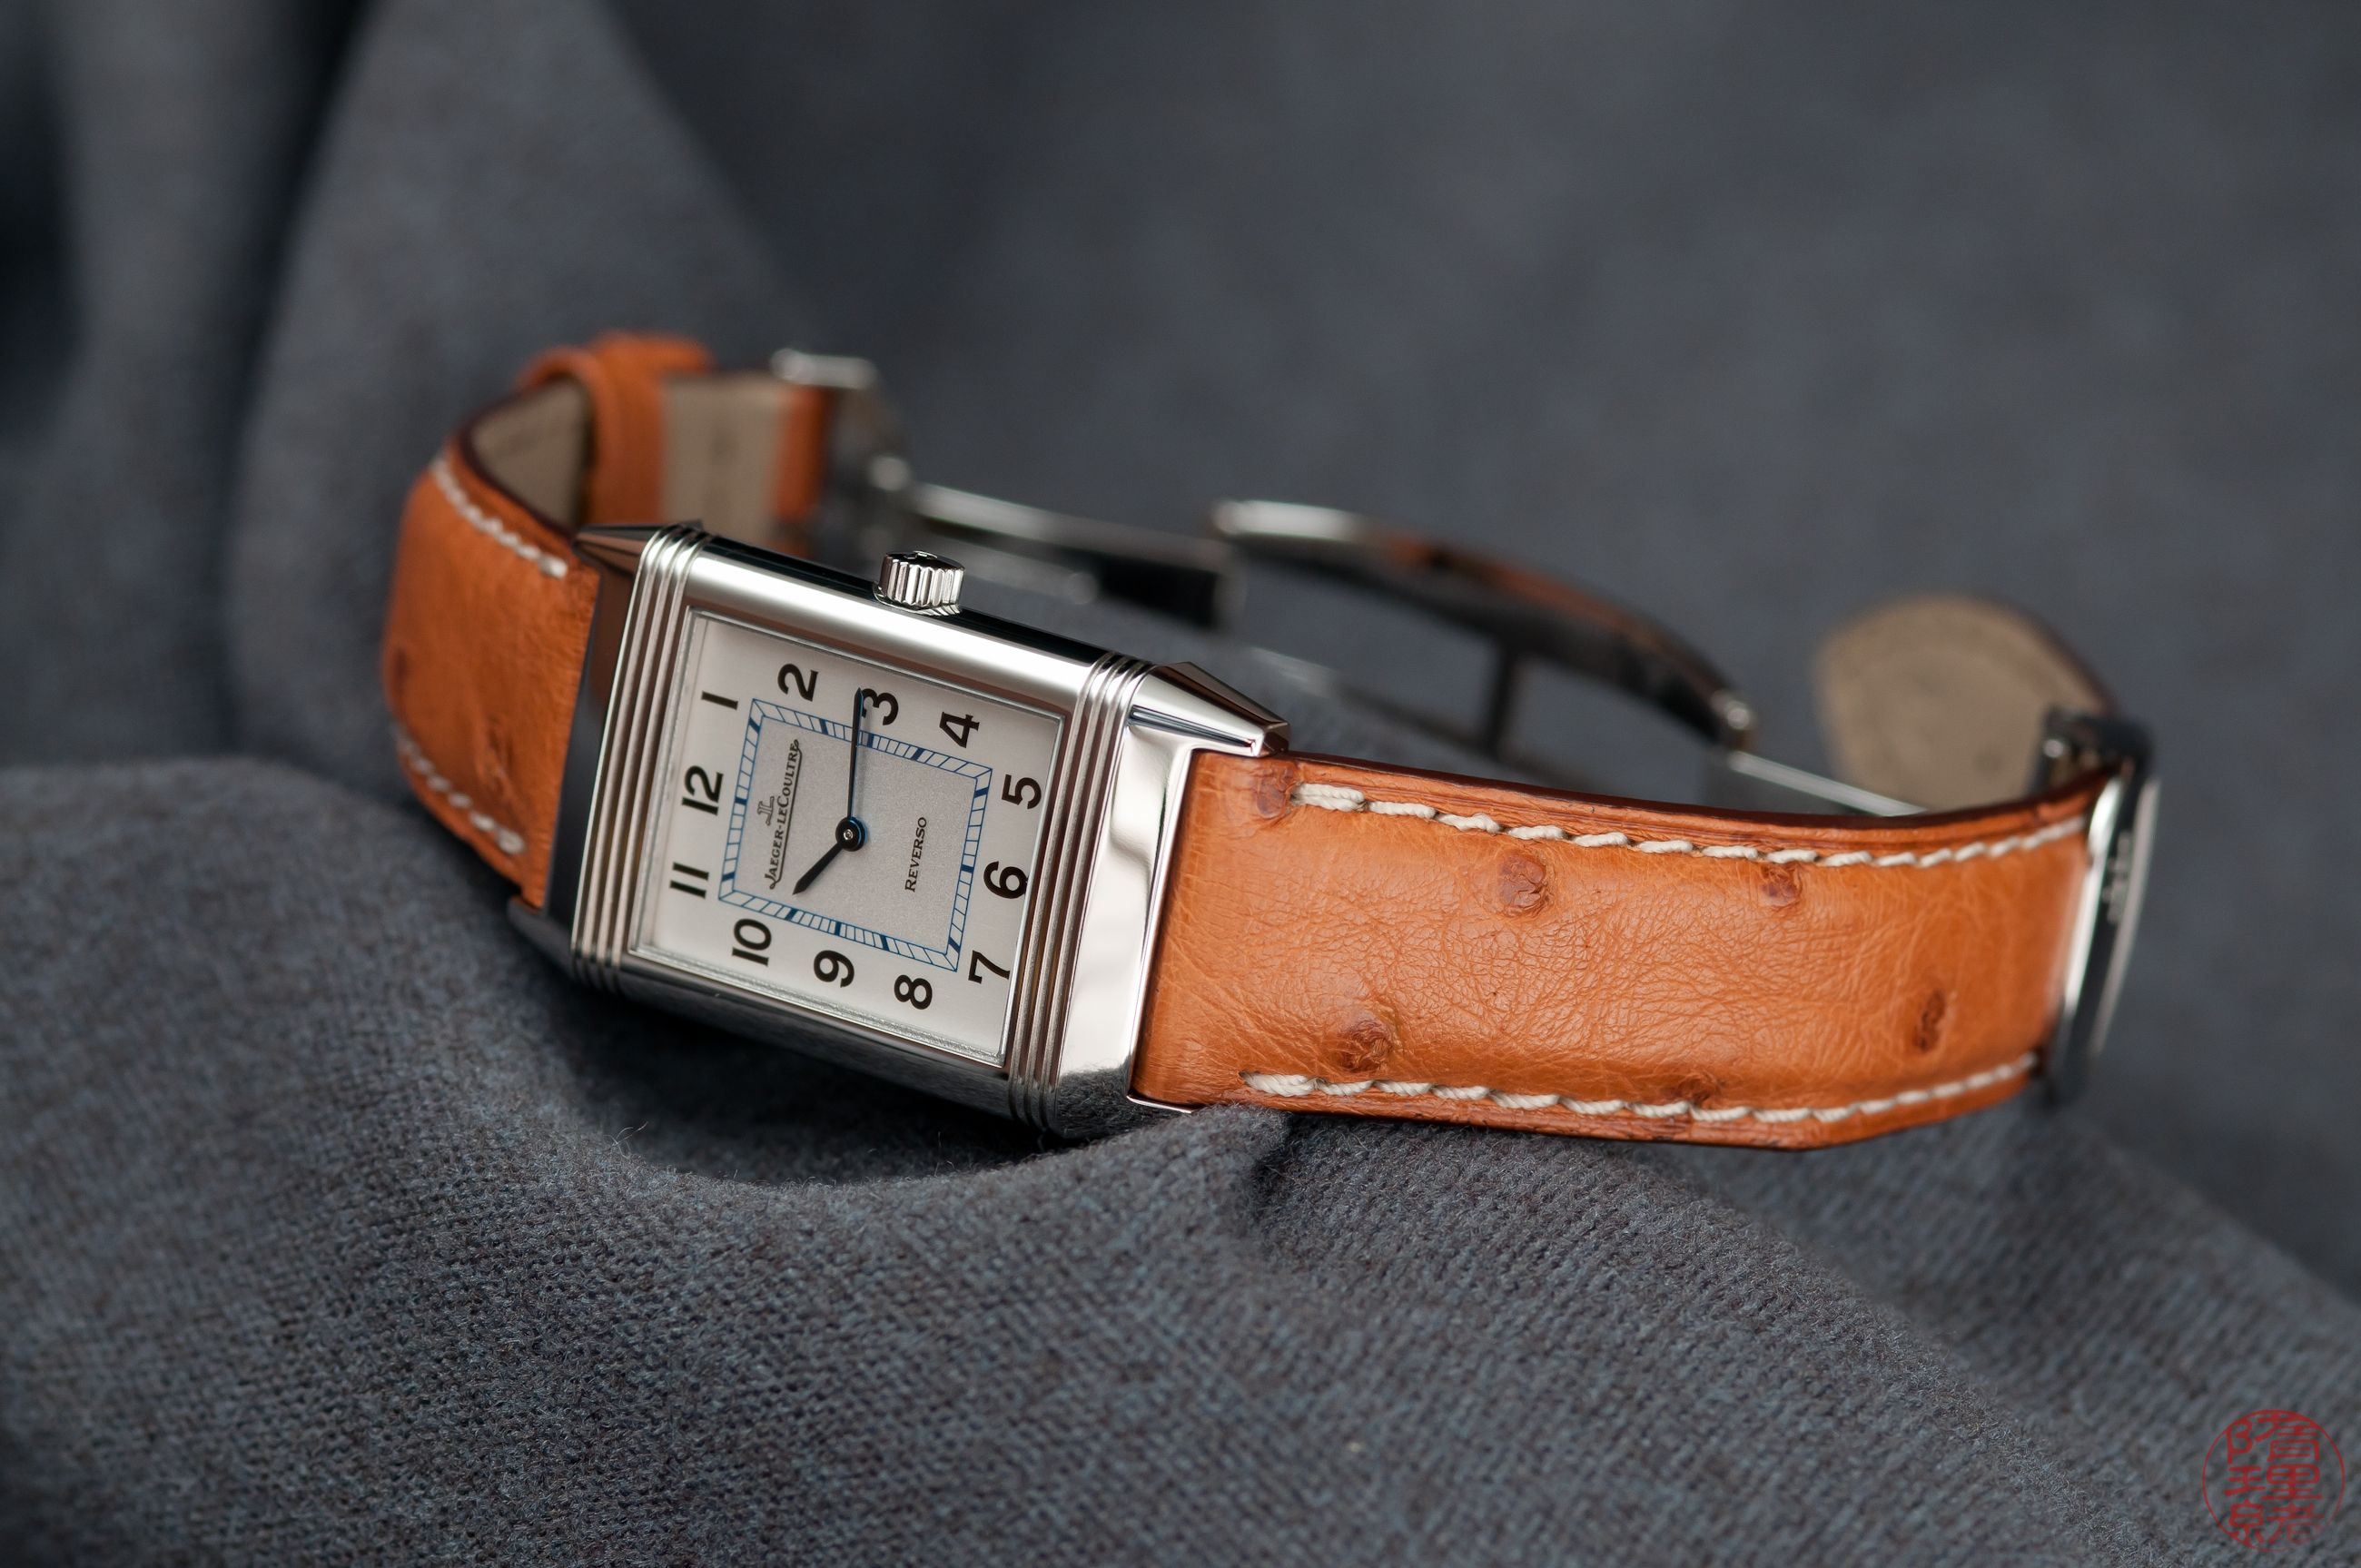 c3b74be5ff86 On my wrist  Jaeger-leCoultre Reverso Classique with the ostrich strap.